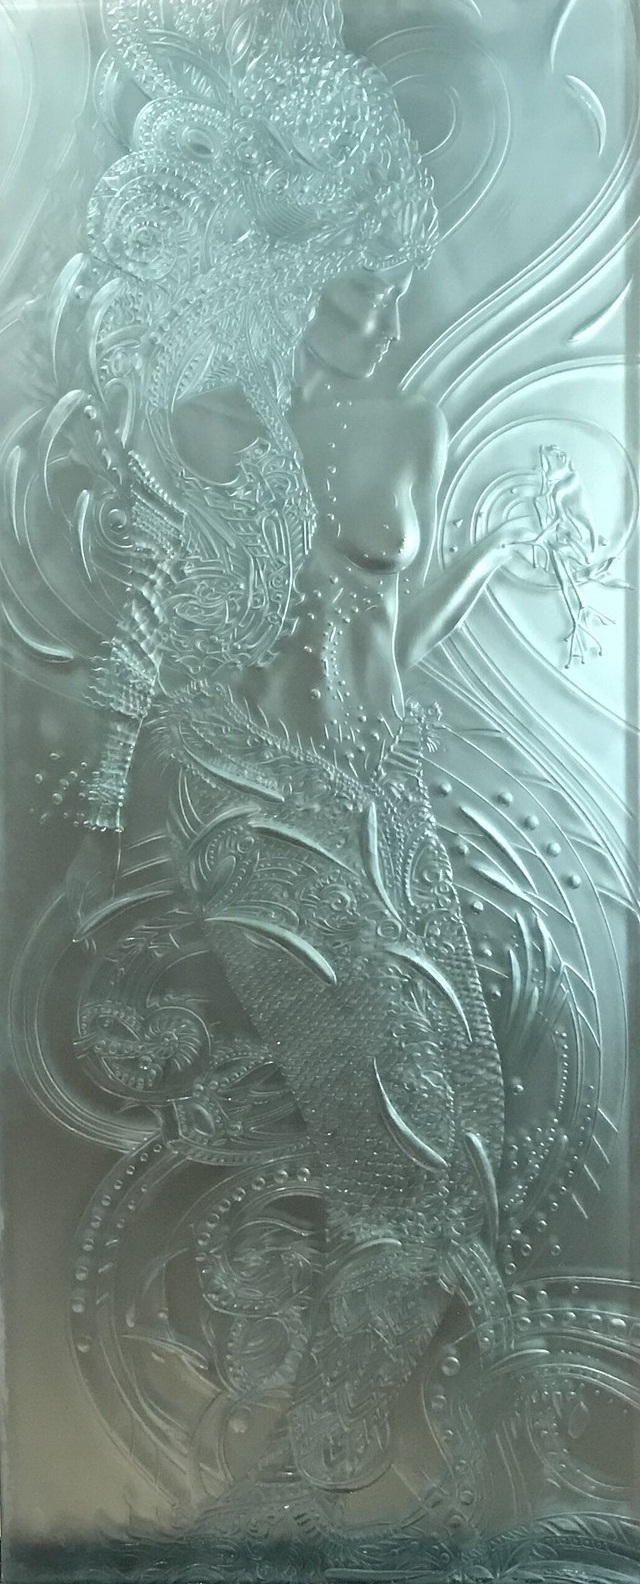 "ibiza - Dimensions: 27""w x 66""h75 lbsCarved 3/4"" glassPicture unframedIbiza is a young mermaid warrior princess from the Mediterranean sea, with a frog who loves her. The glass in front of the printed image was carved by hand to accentuate elements of the underlying image. As light moves across the piece, the carved glass sparkles and shifts, adding a three dimensional element to the work."